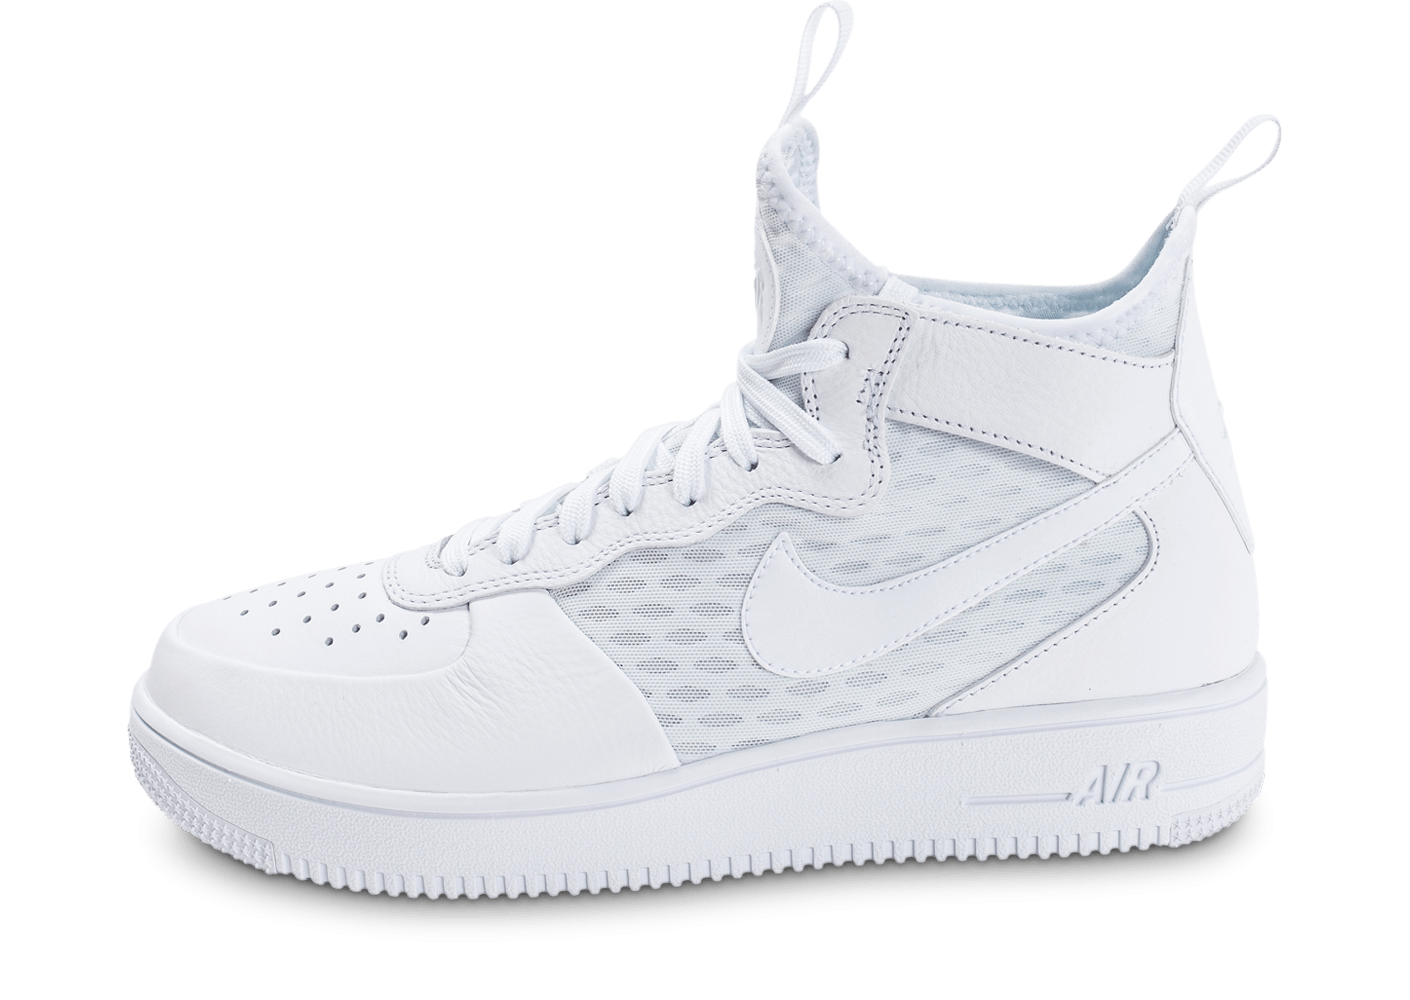 Réduction promotionnelle Nike air force one femme 6WY86